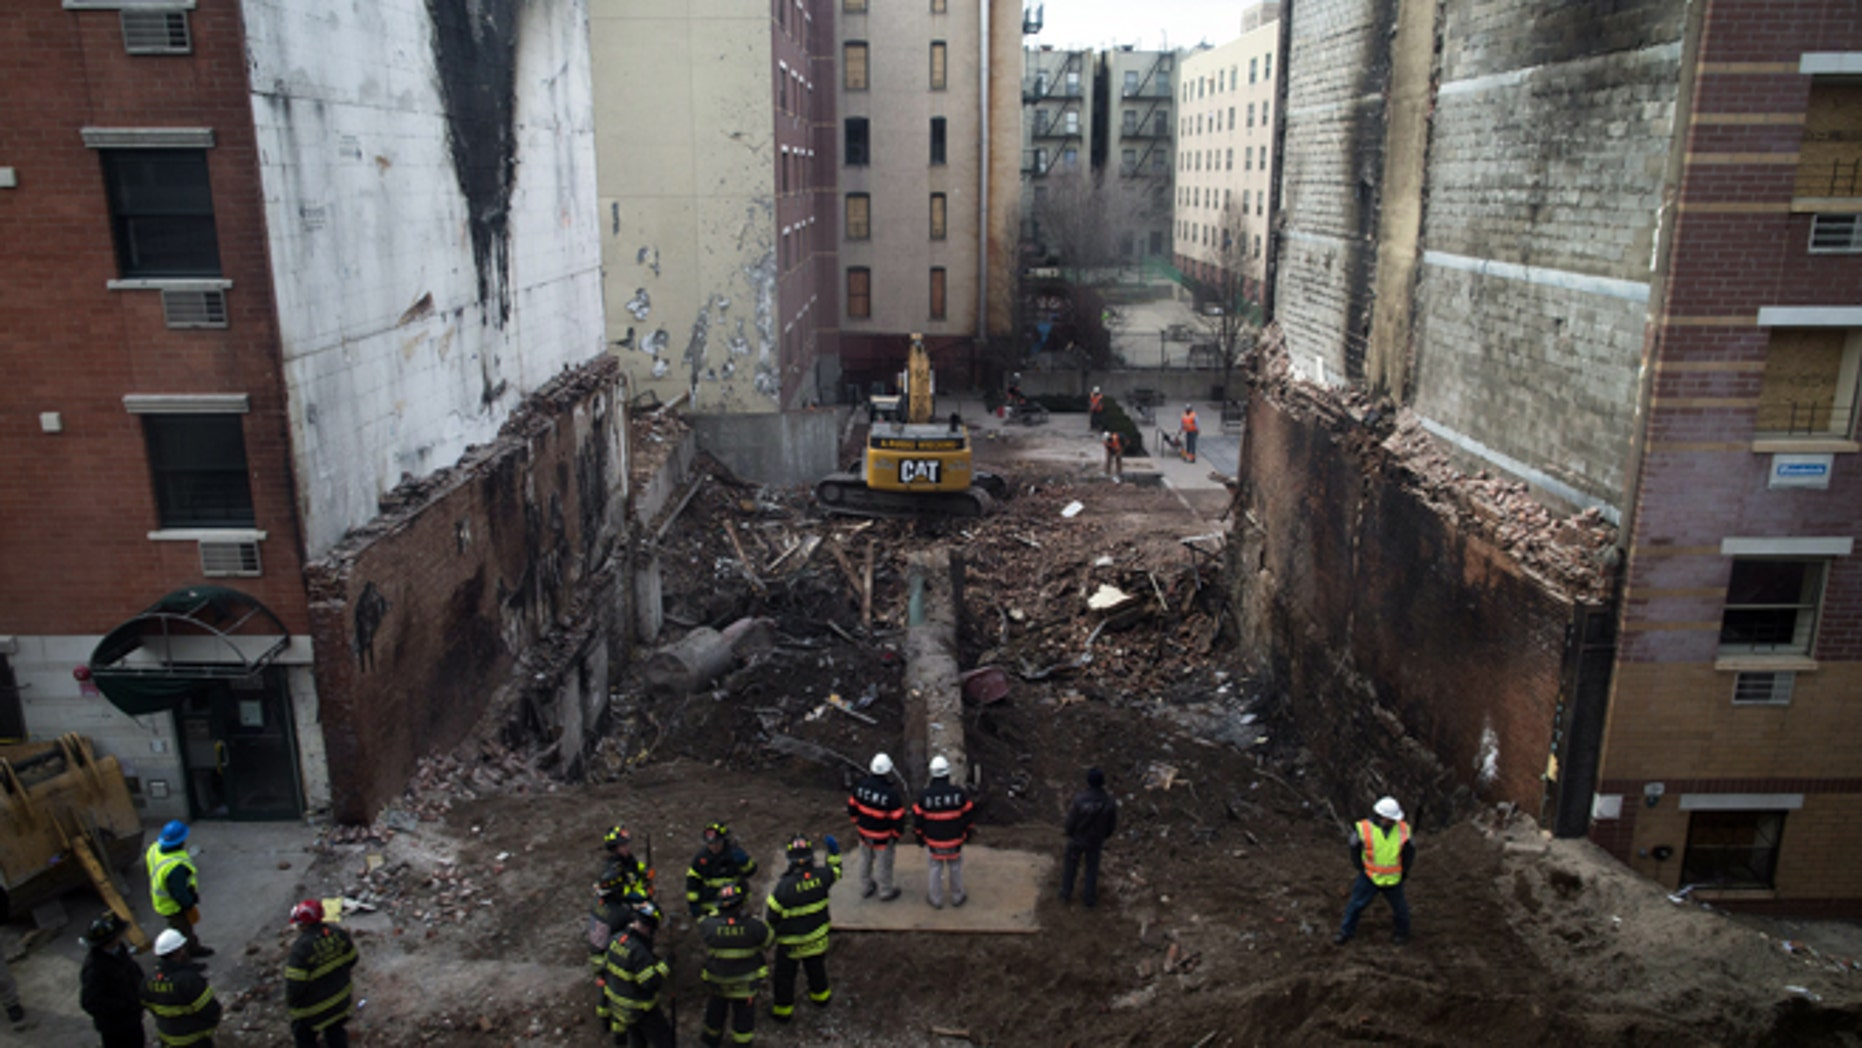 Workers stand beside the recently cleared basement of the two buildings leveled by an explosion on Wednesday in the East Harlem neighborhood of New York, Sunday, March 16, 2014. A pair of congregations gathered to mourn Sunday, one for its lost church and one for two members who lost their lives in the massive explosion. (AP Photo/John Minchillo)